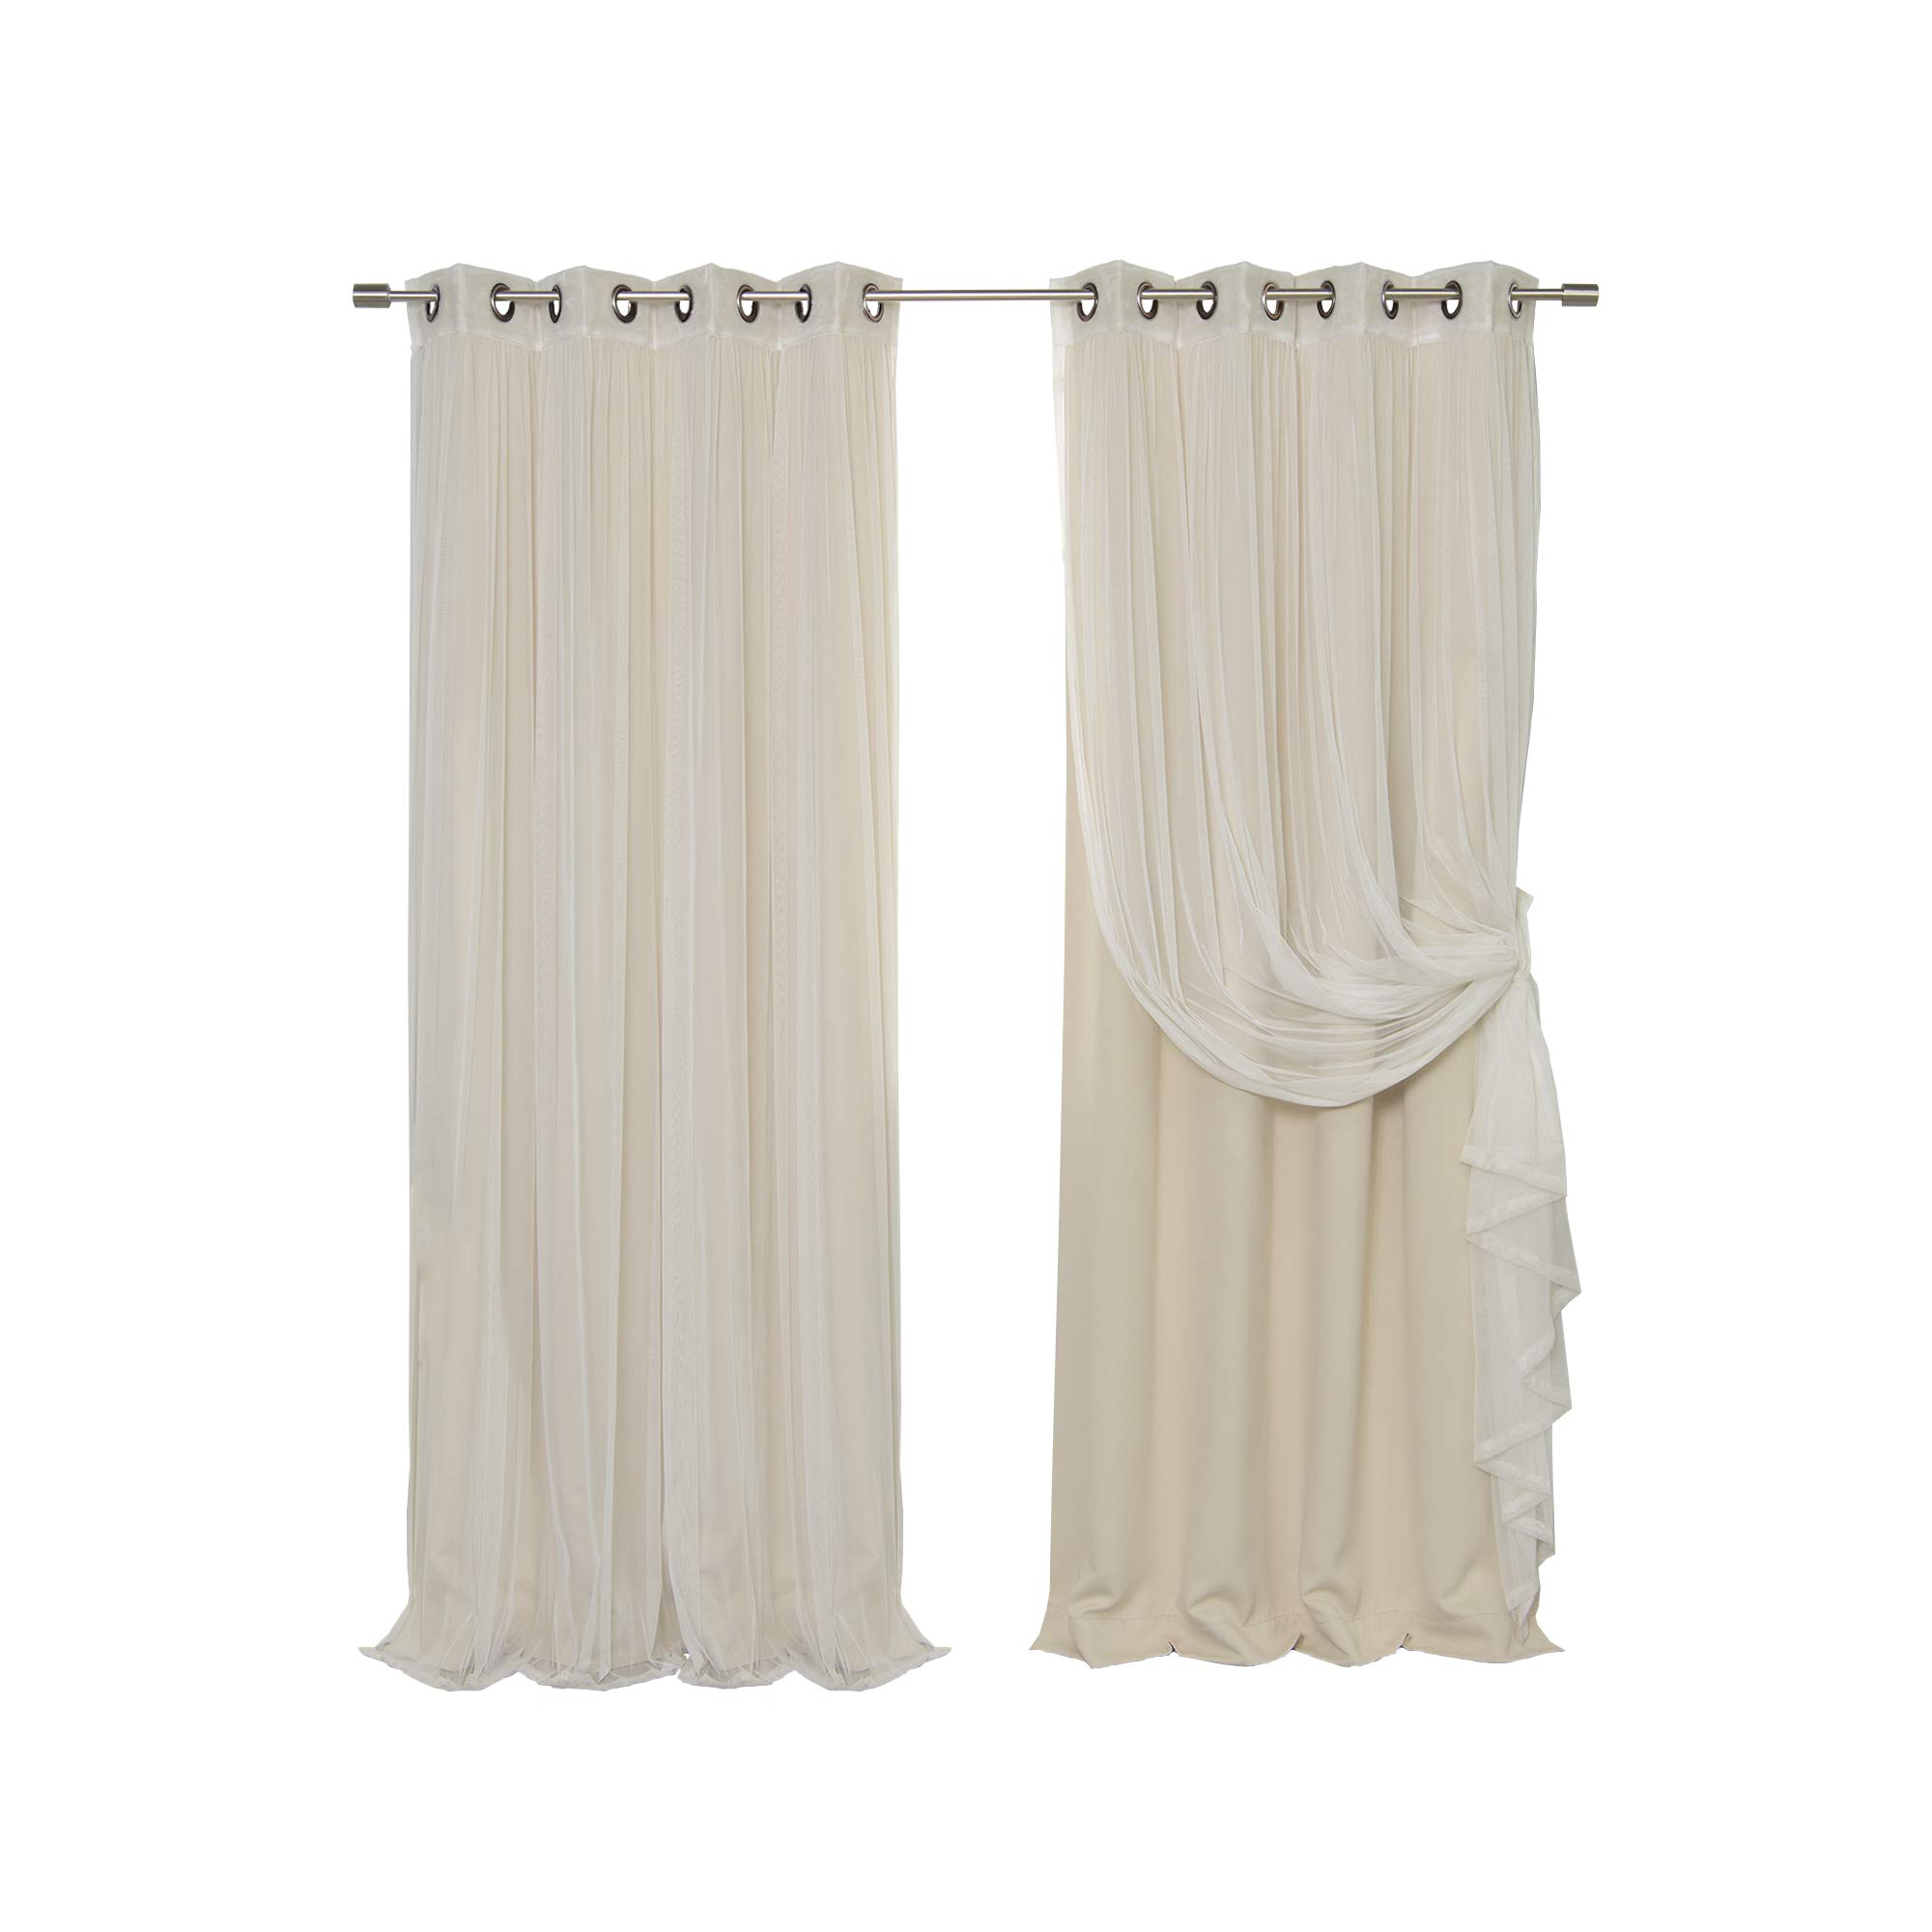 Mix And Match Blackout Tulle Lace Sheer Curtain Panel Sets Inside Widely Used Details About Best Home Fashion Mix Match Tulle Sheer Lace Blackout Curtain  Set – Antique (Gallery 19 of 20)